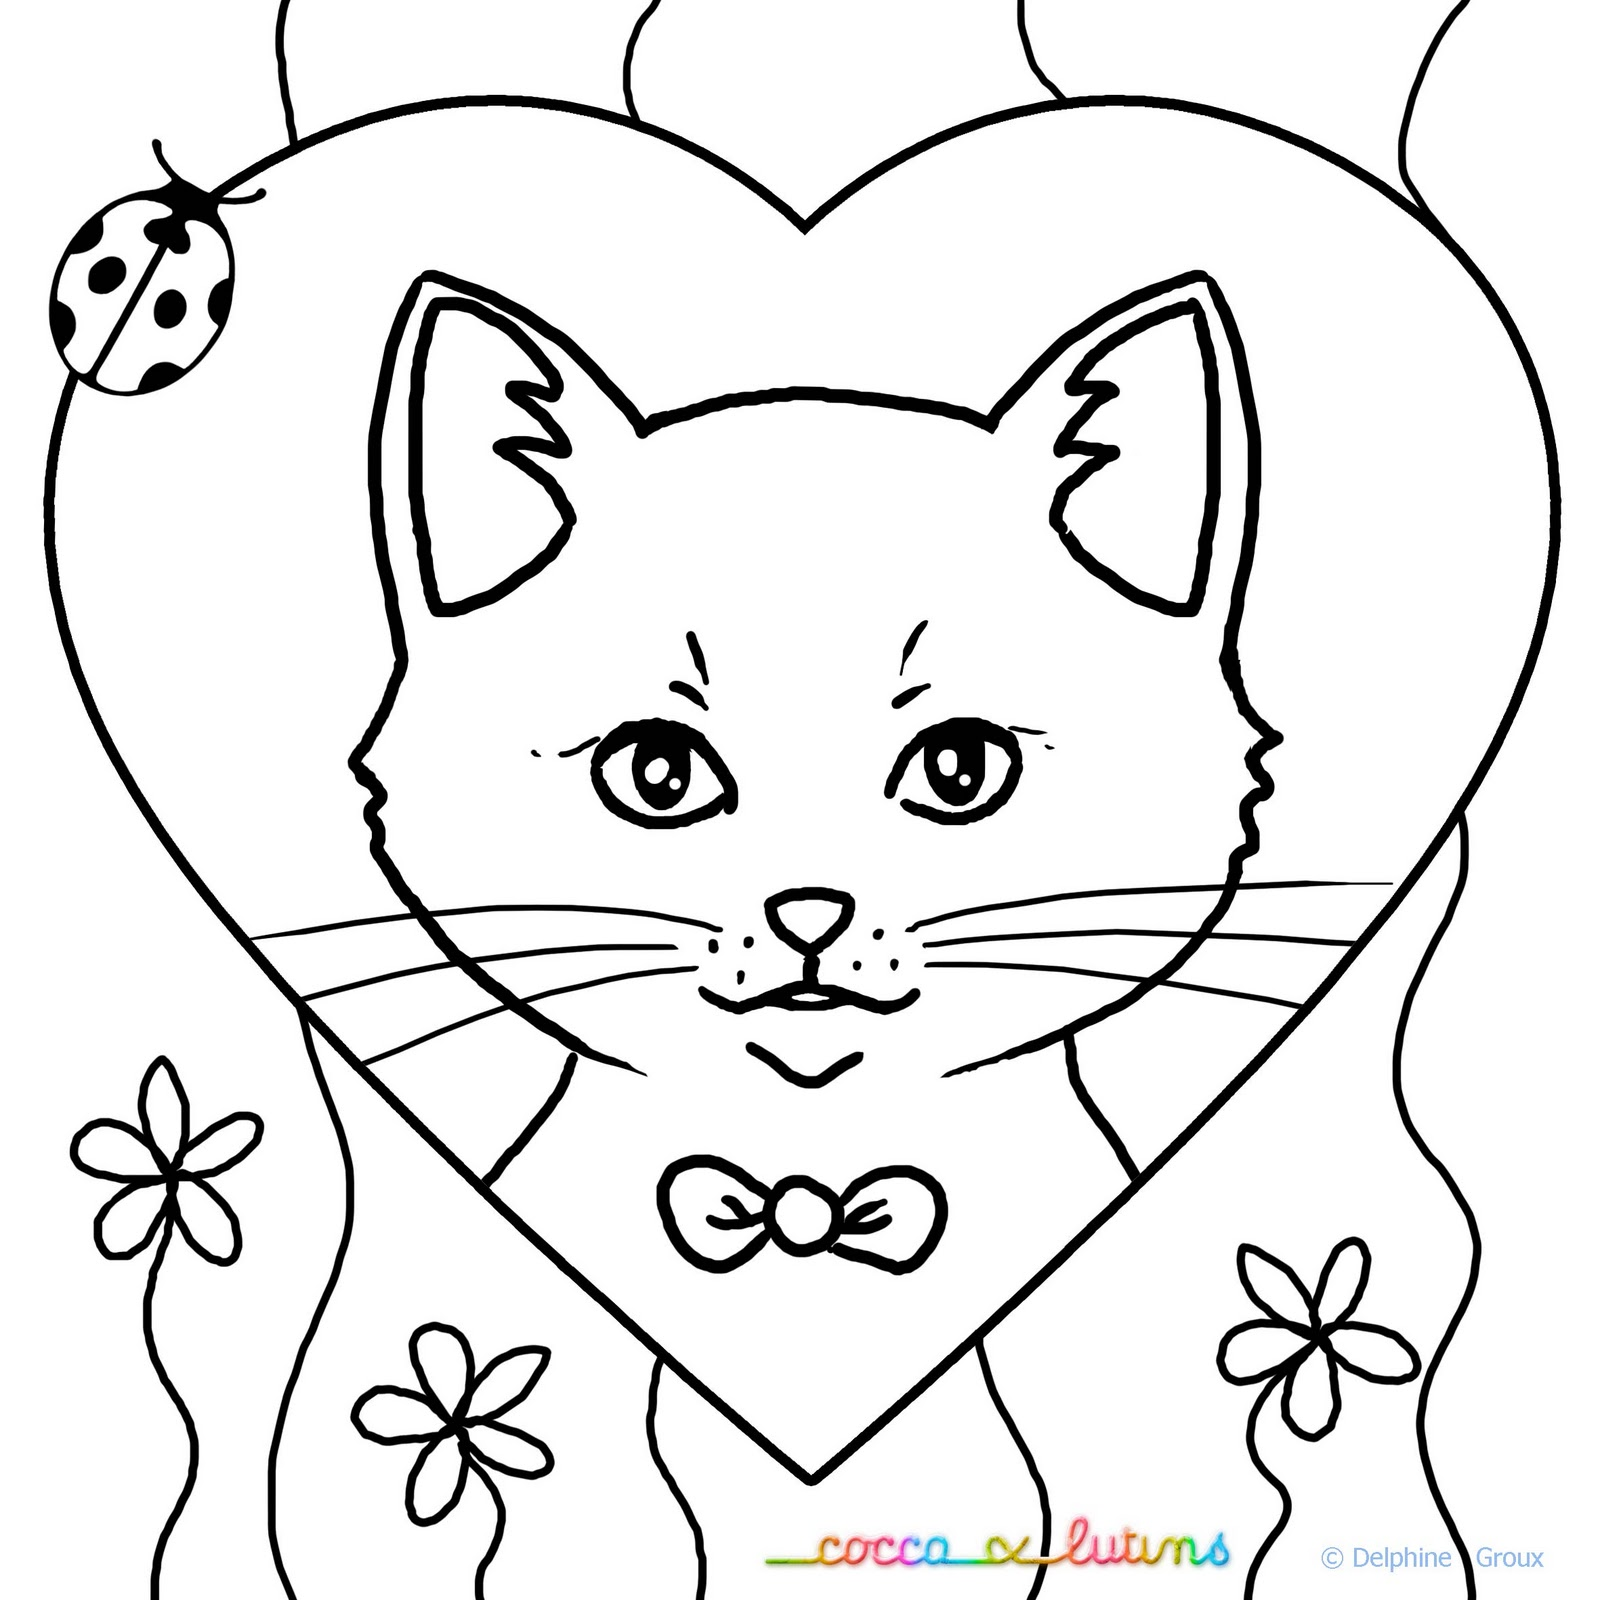 Coloriages imprimer chat num ro 682627 - Dessins de chats rigolos ...